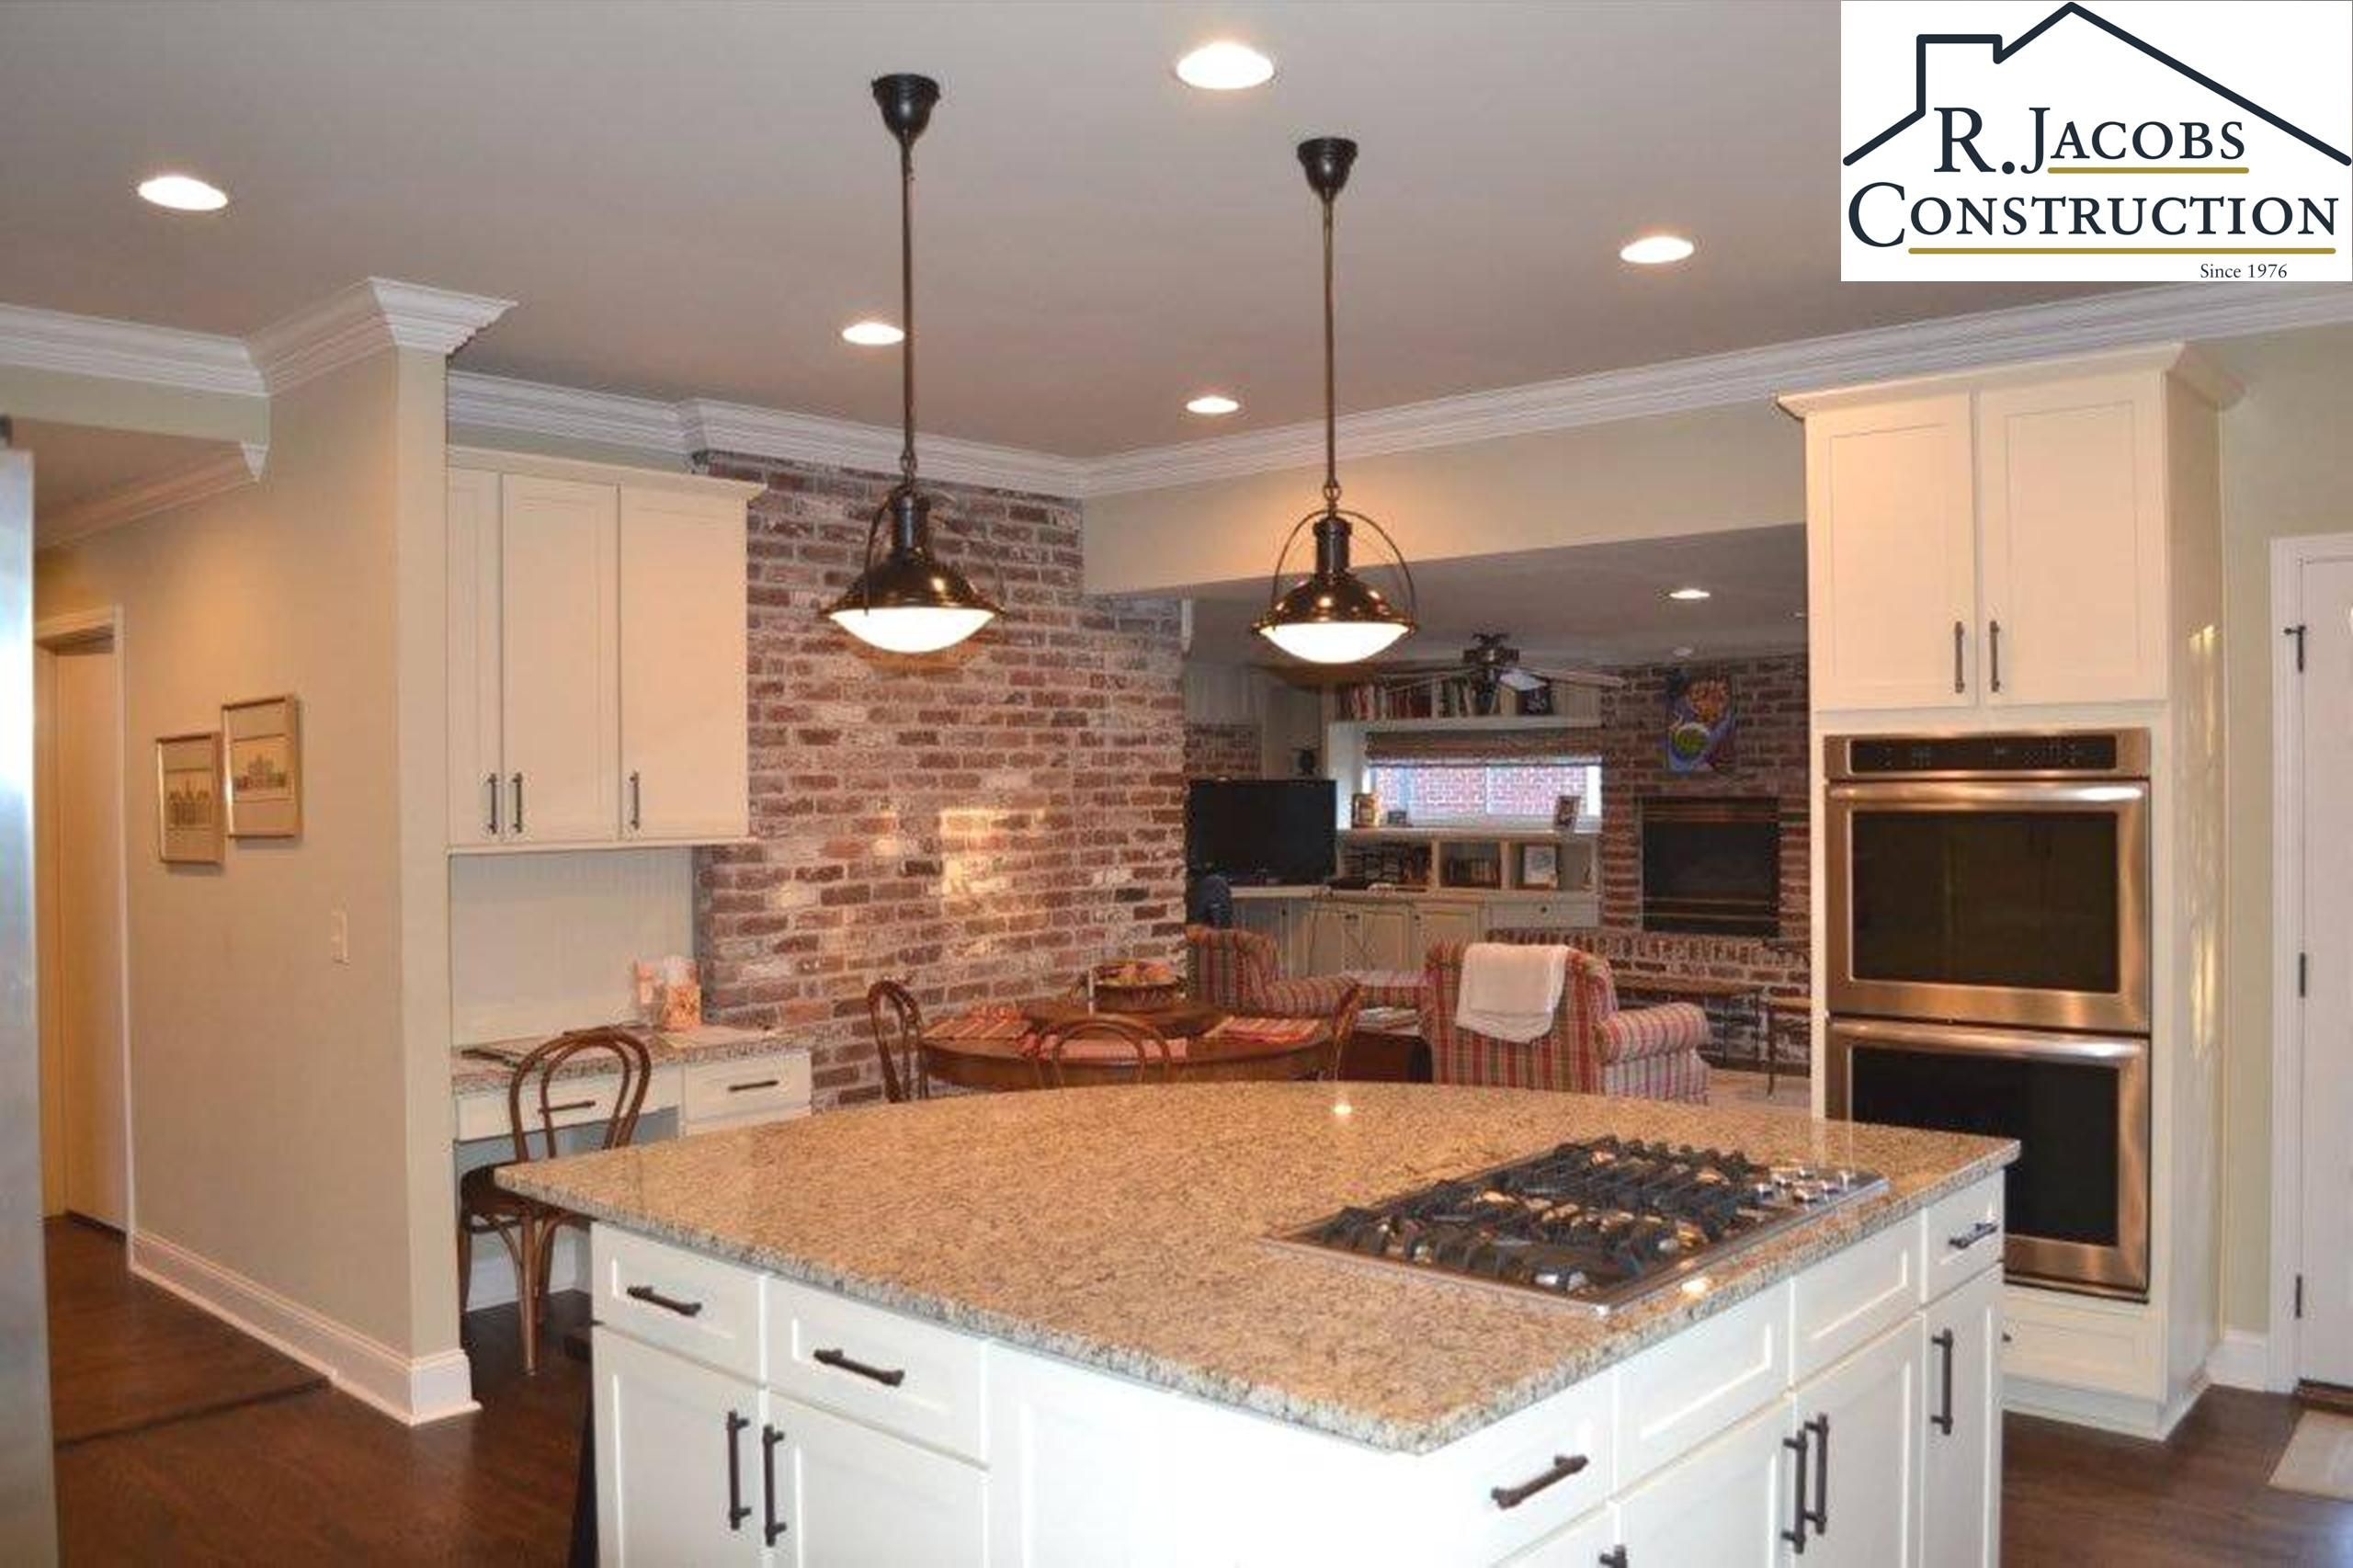 Home additions home remodeling home renovation home design r